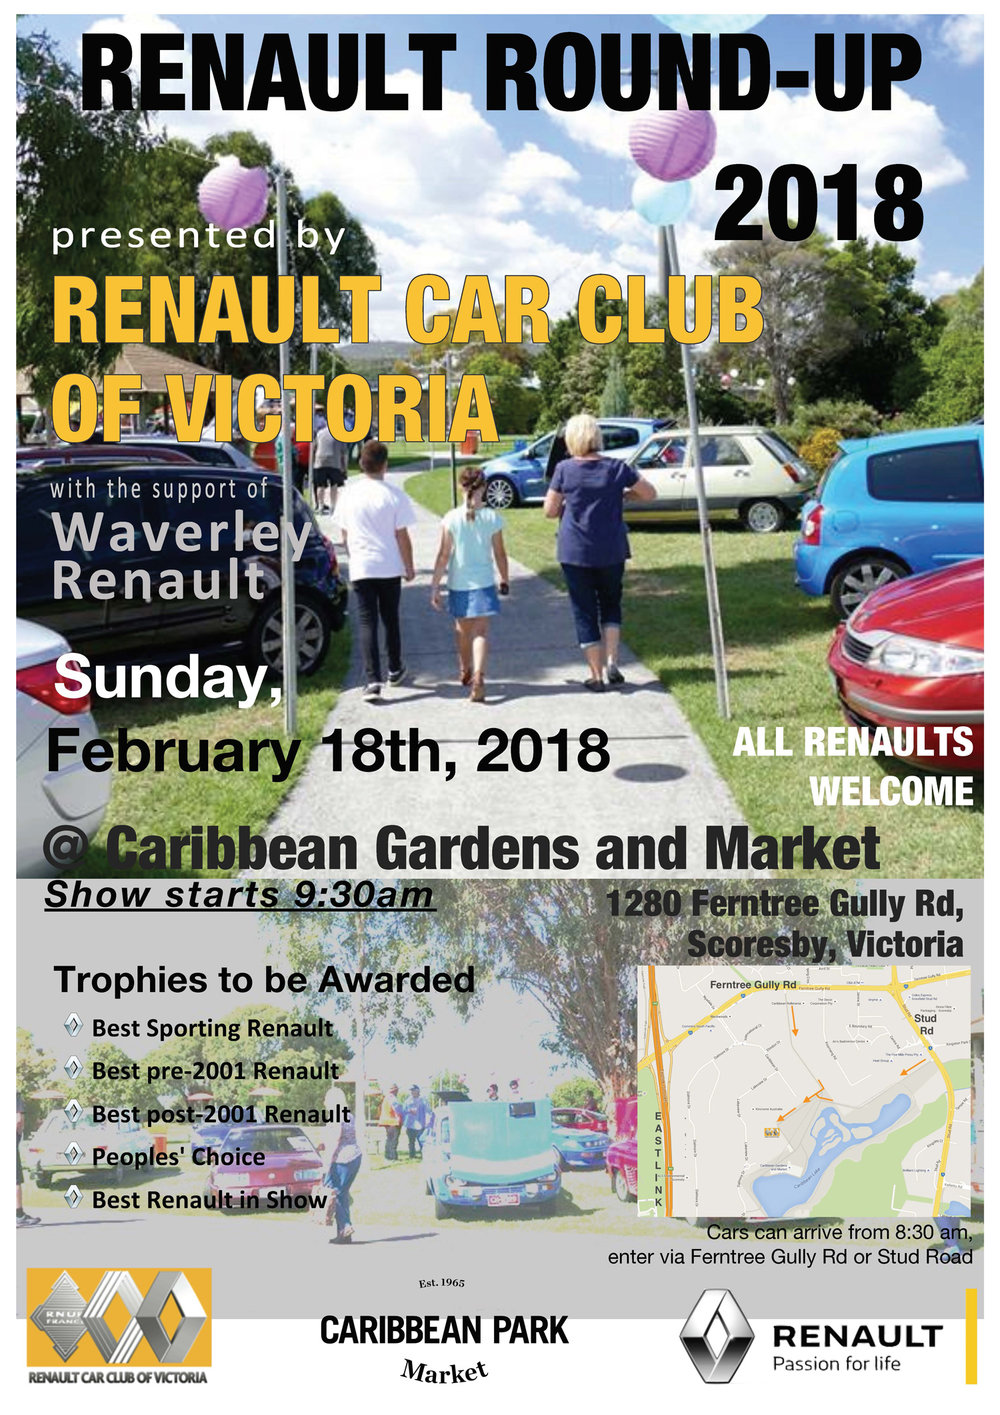 Renault-Round-up-2018-Flyer-GR-2.jpg